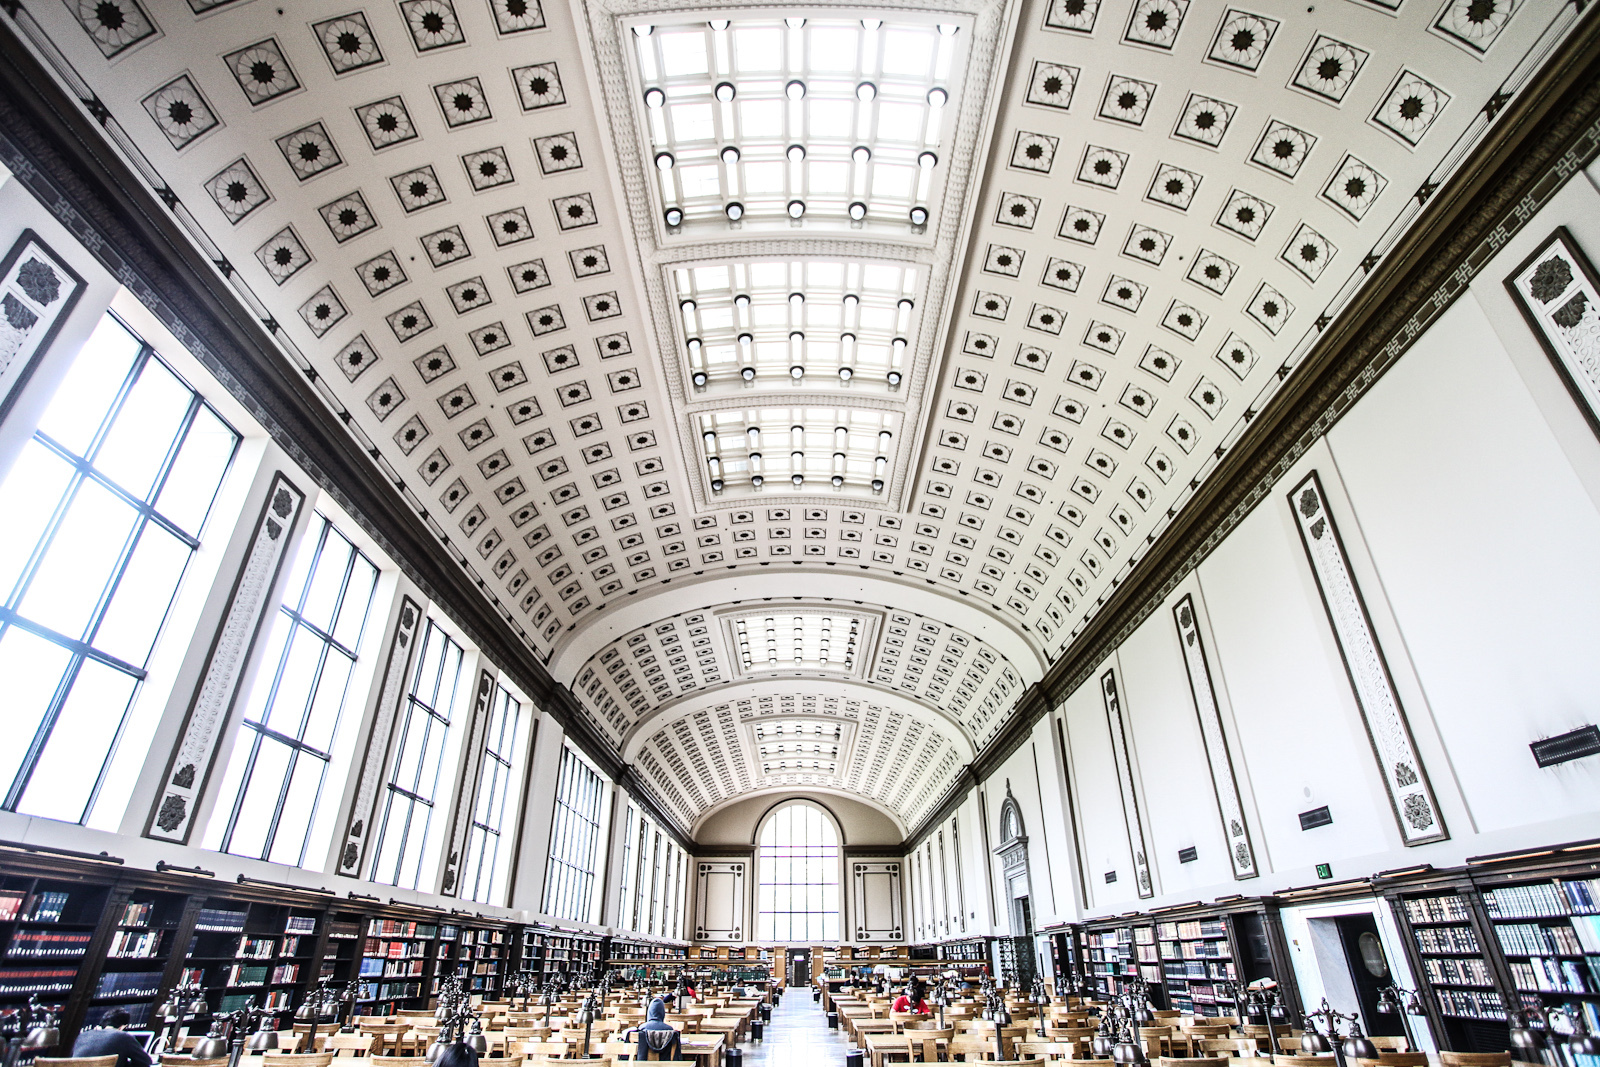 Doe Memorial Library, University of California, Alameda, California, USA, July 22, 2013 © Courtesy of Sharat Ganapati/Flickr.